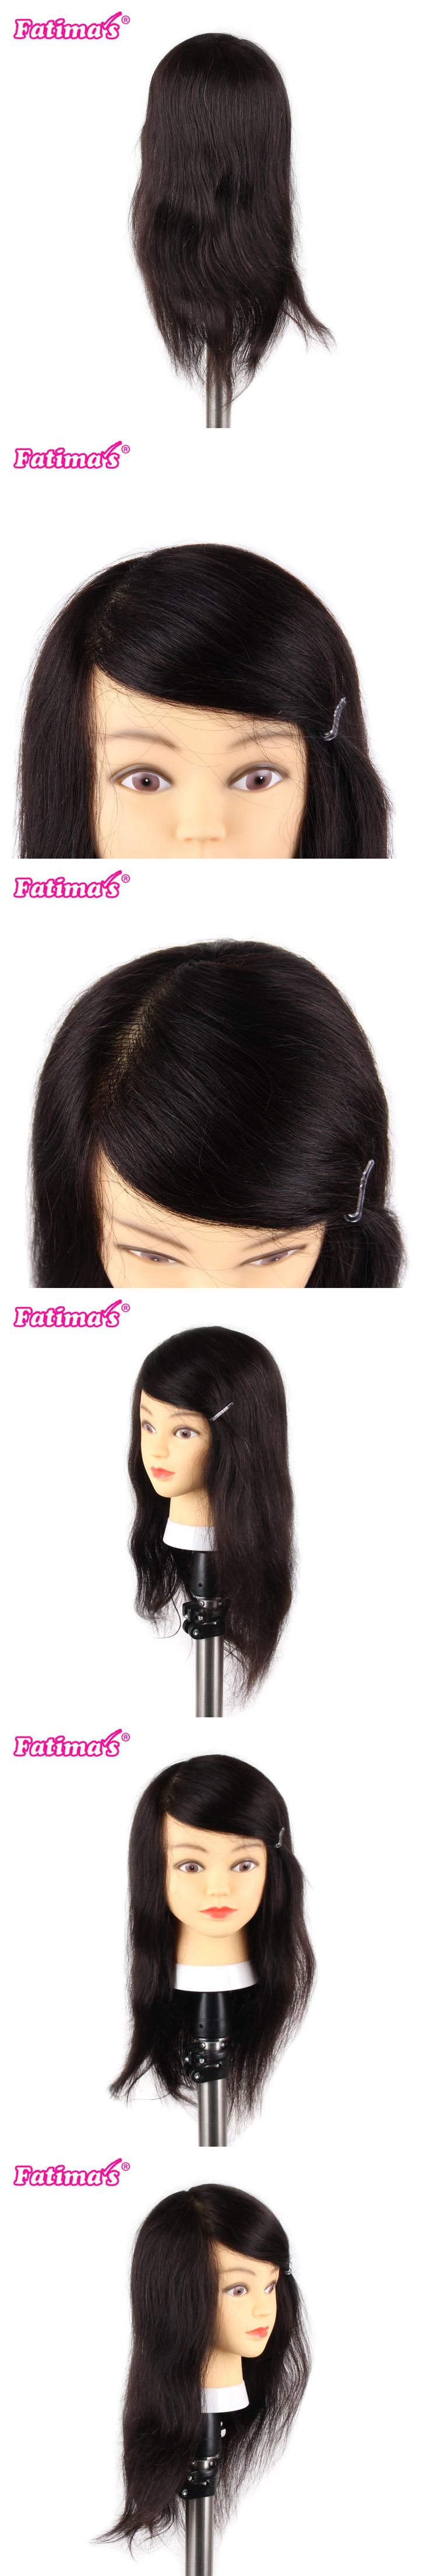 Mannequin Professional Hairdressing Training Heads 100 Human Hair Best Quality Female Mannequin Head With Natural Black Hair